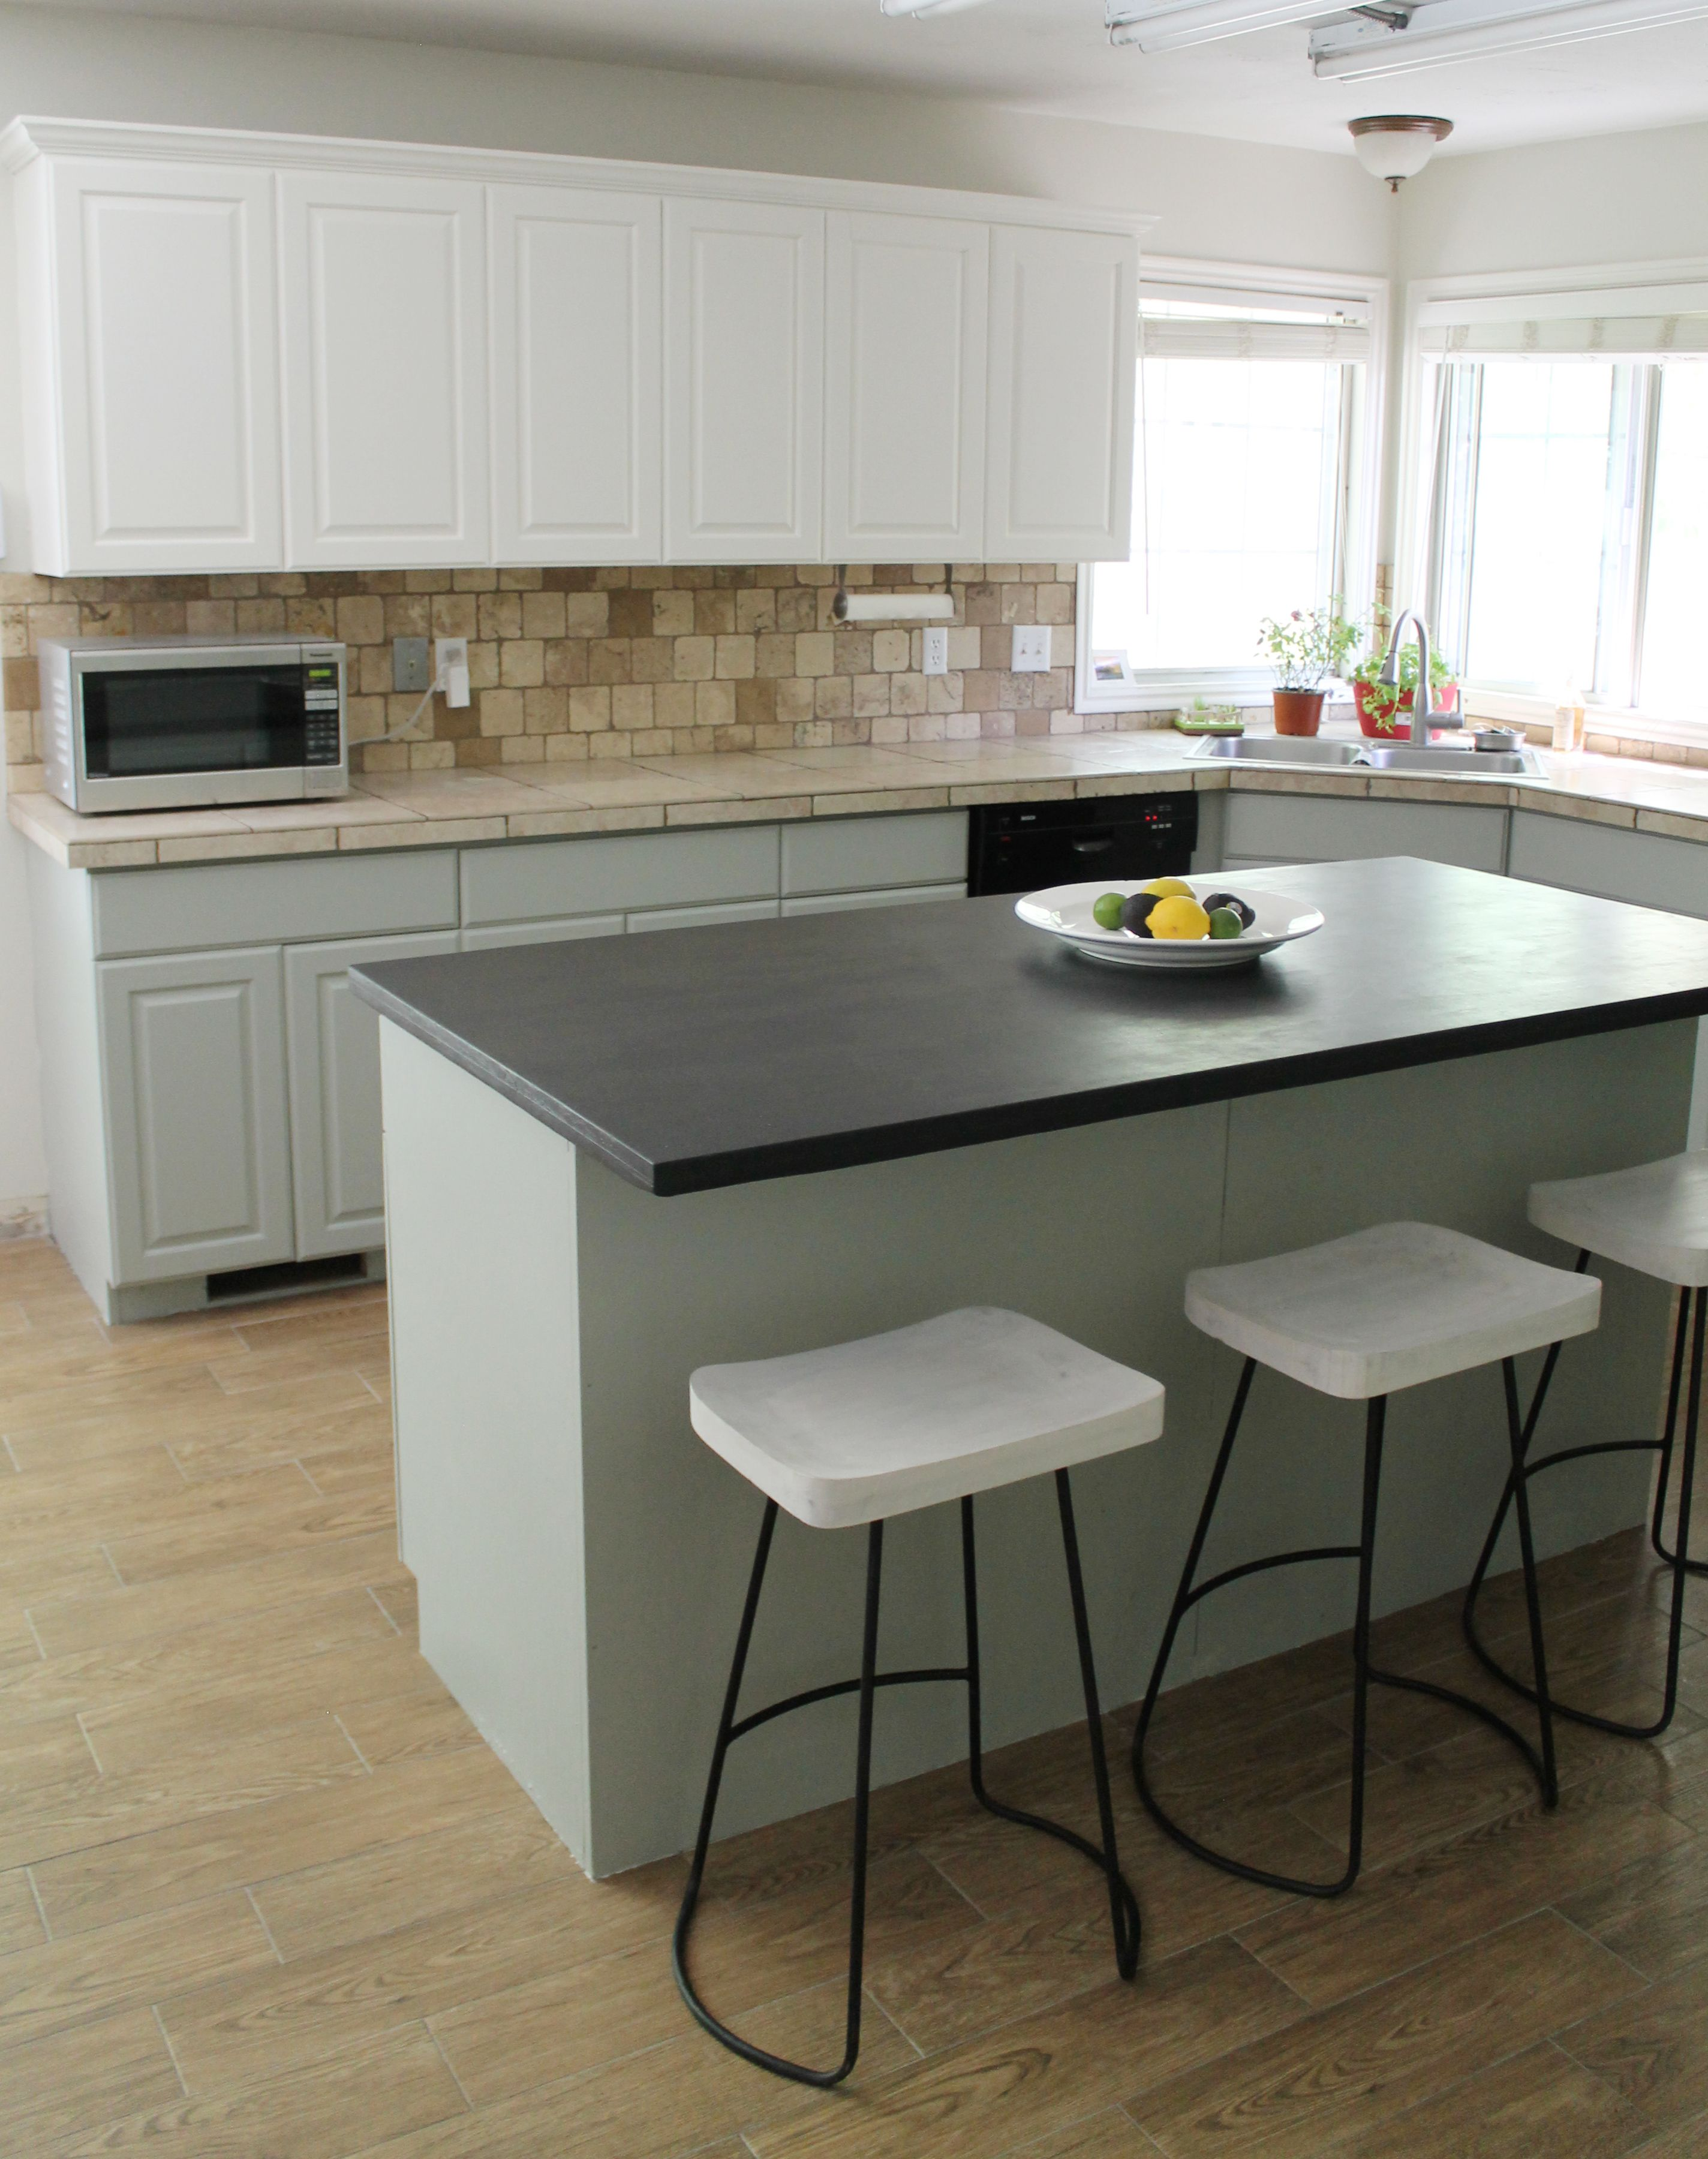 Our Painted Kitchen Cabinets